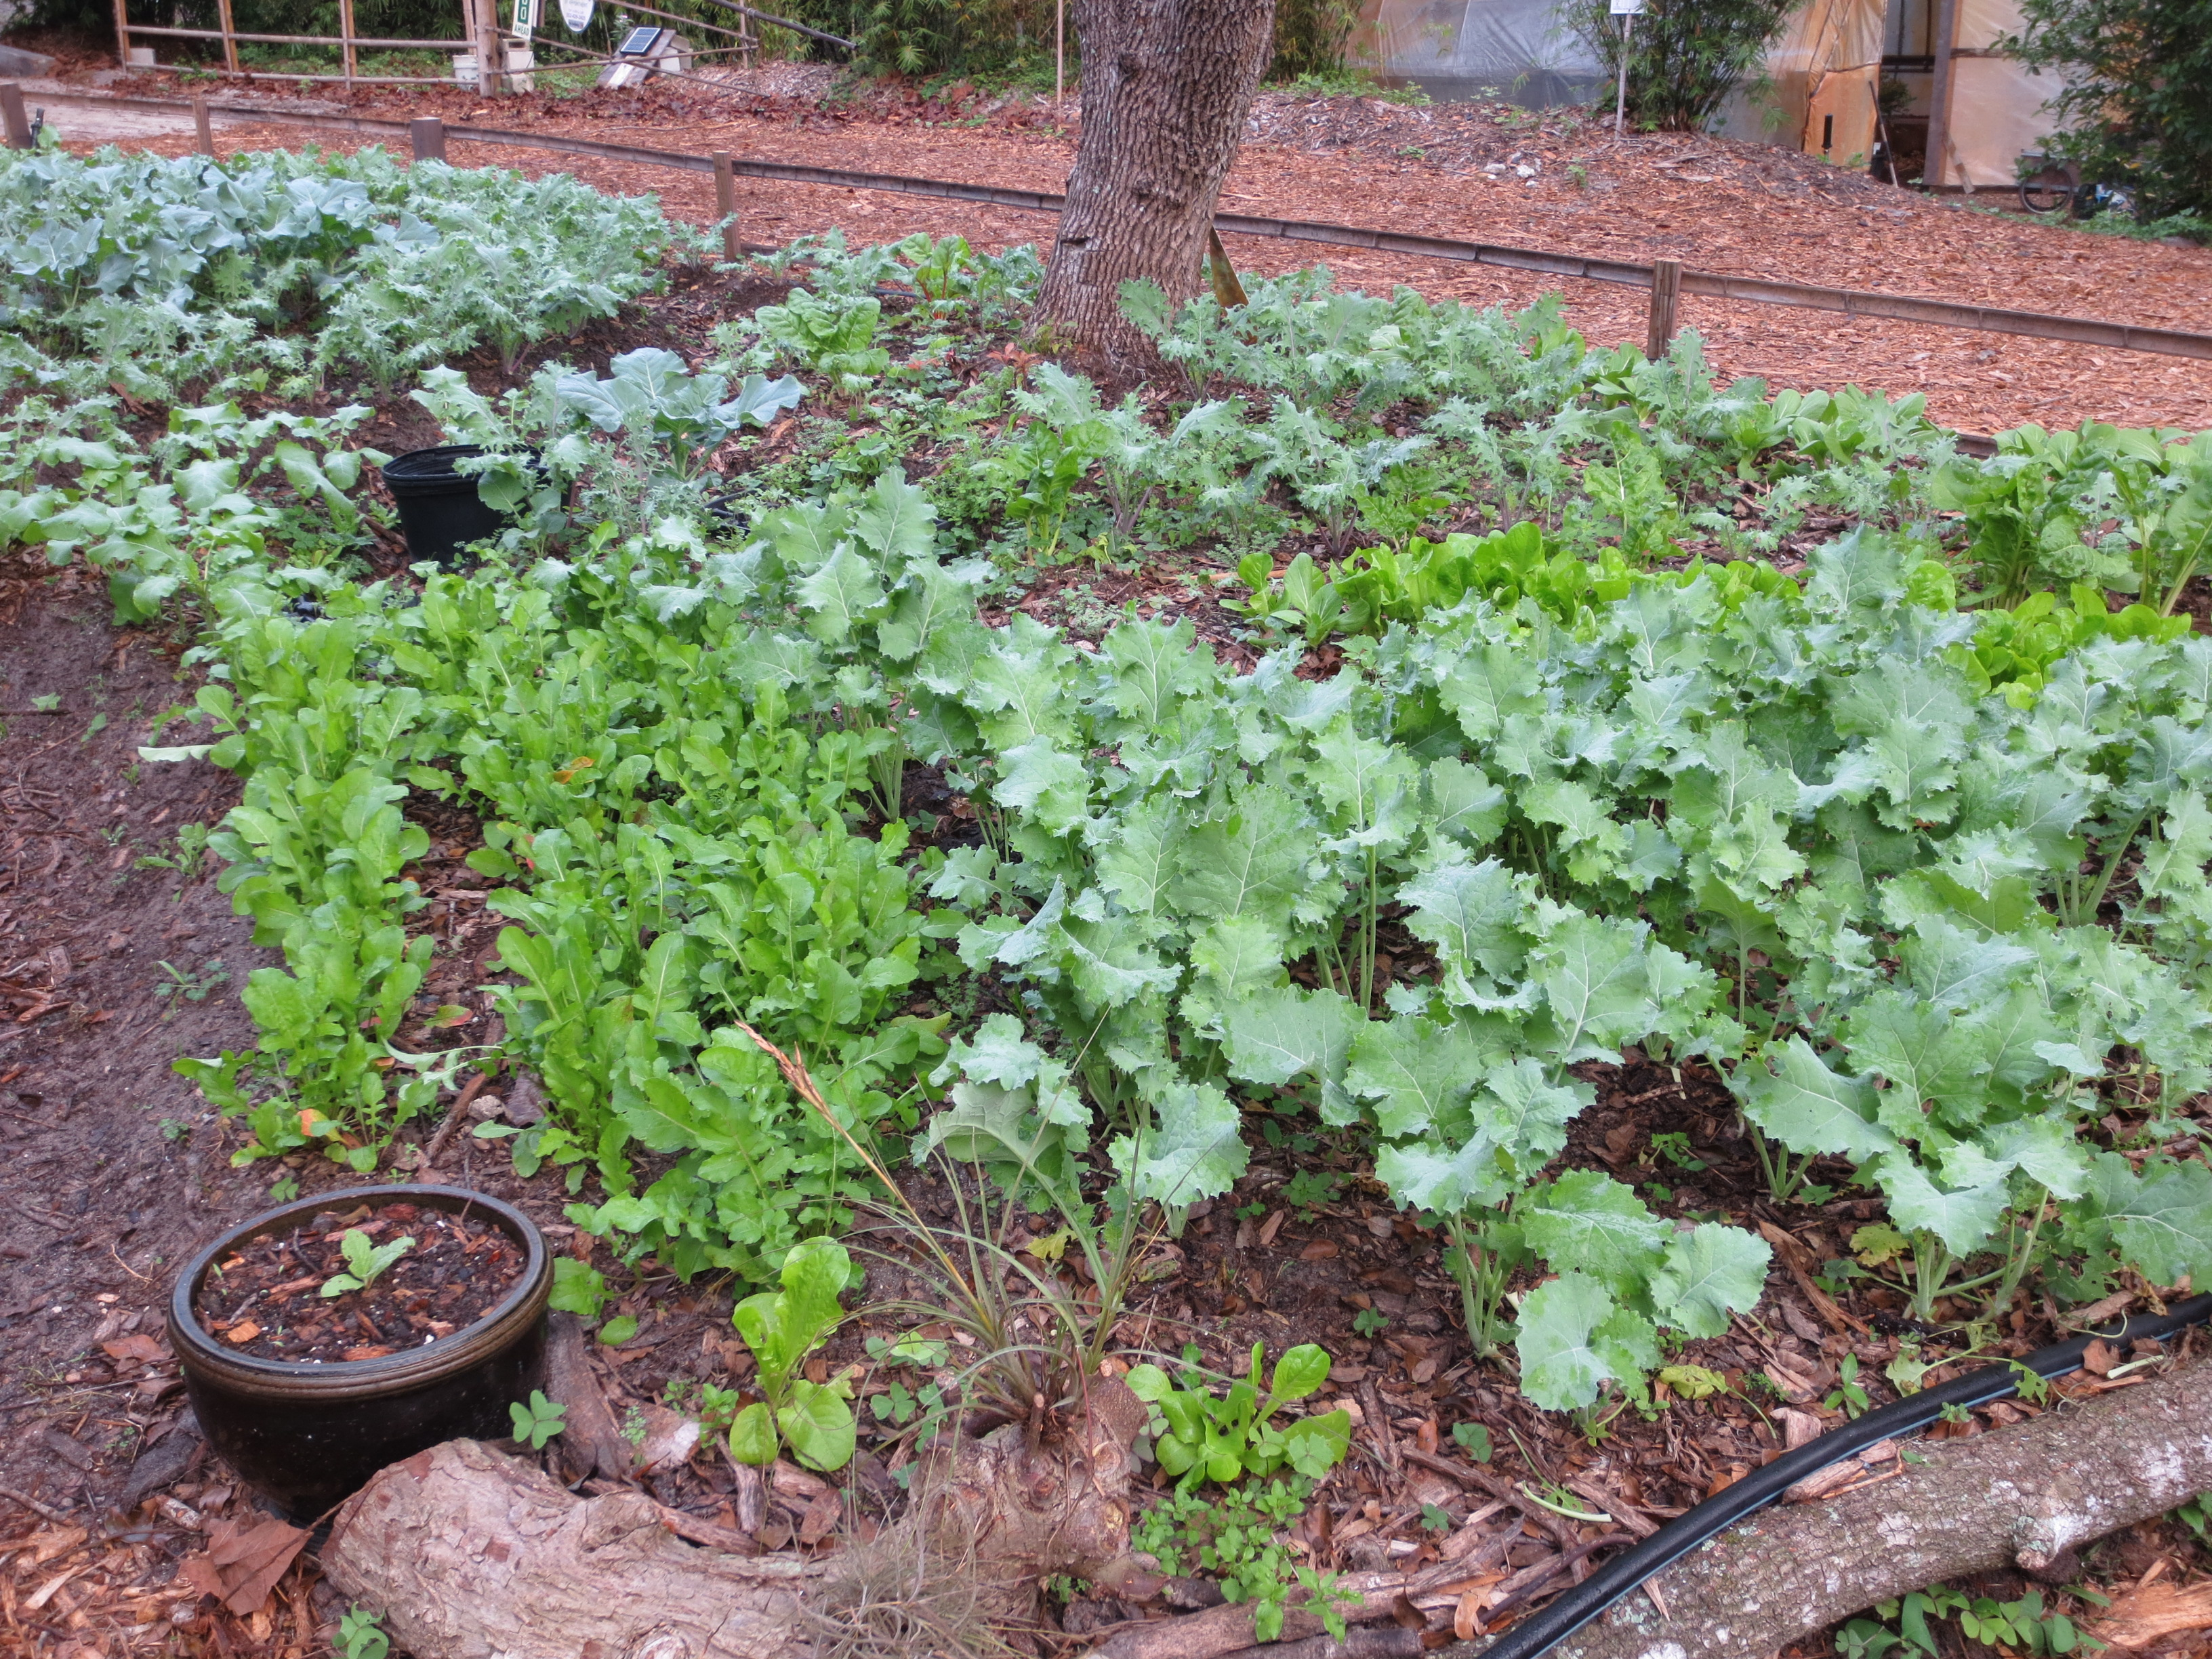 The garden: arugula, kale and lettuce, and broccoli beyond.